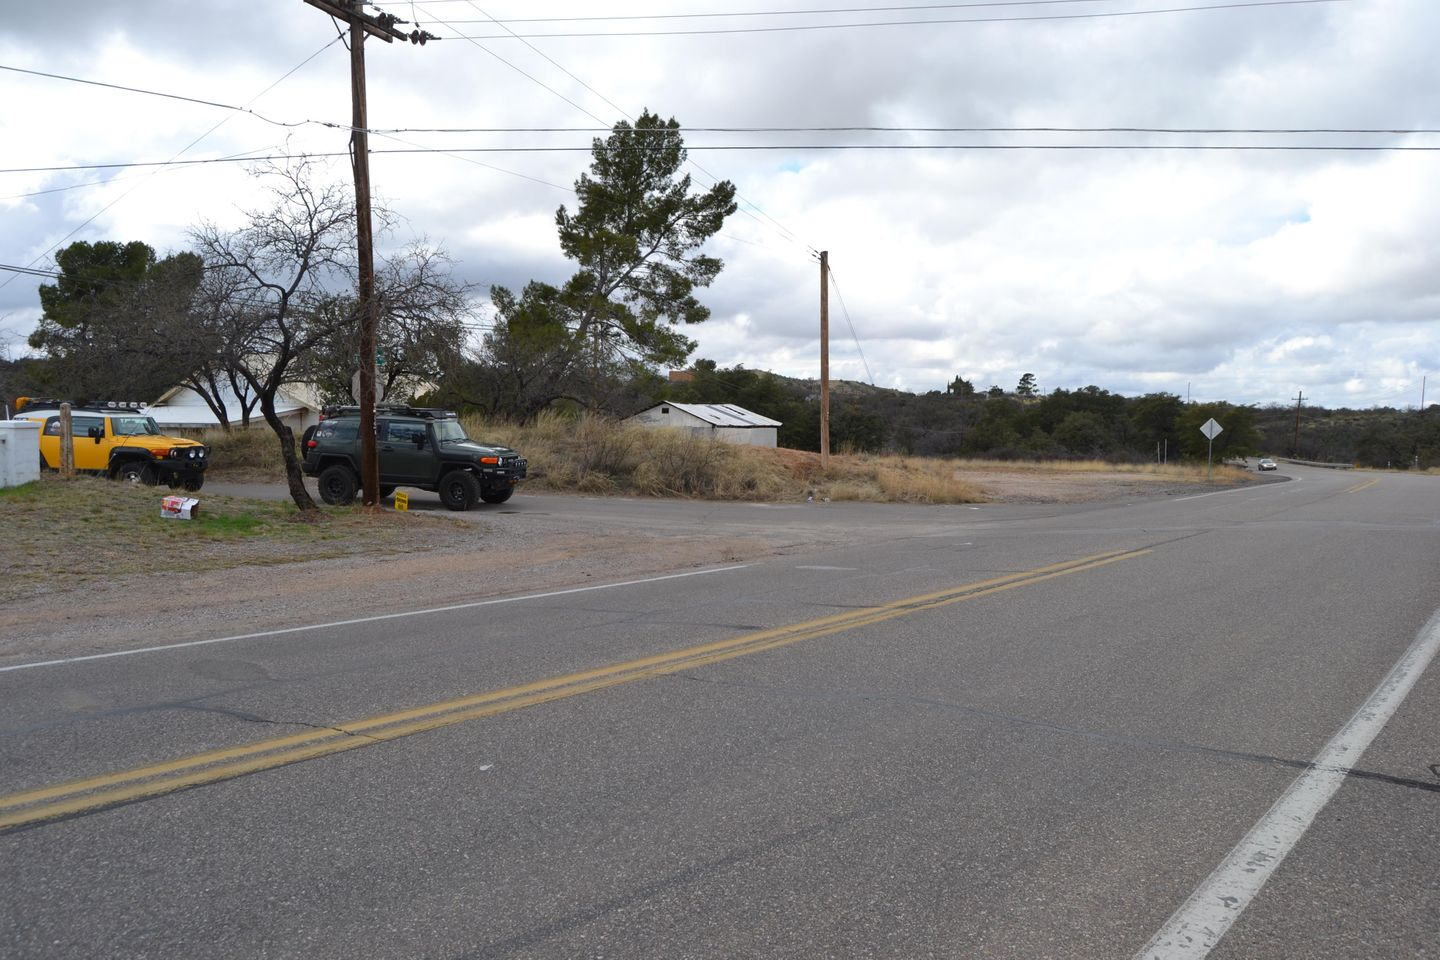 Charouleau Gap / FR# 736 - Waypoint 45: N College Dr and W American Ave (END) Connect to MT. Lemmon Trail